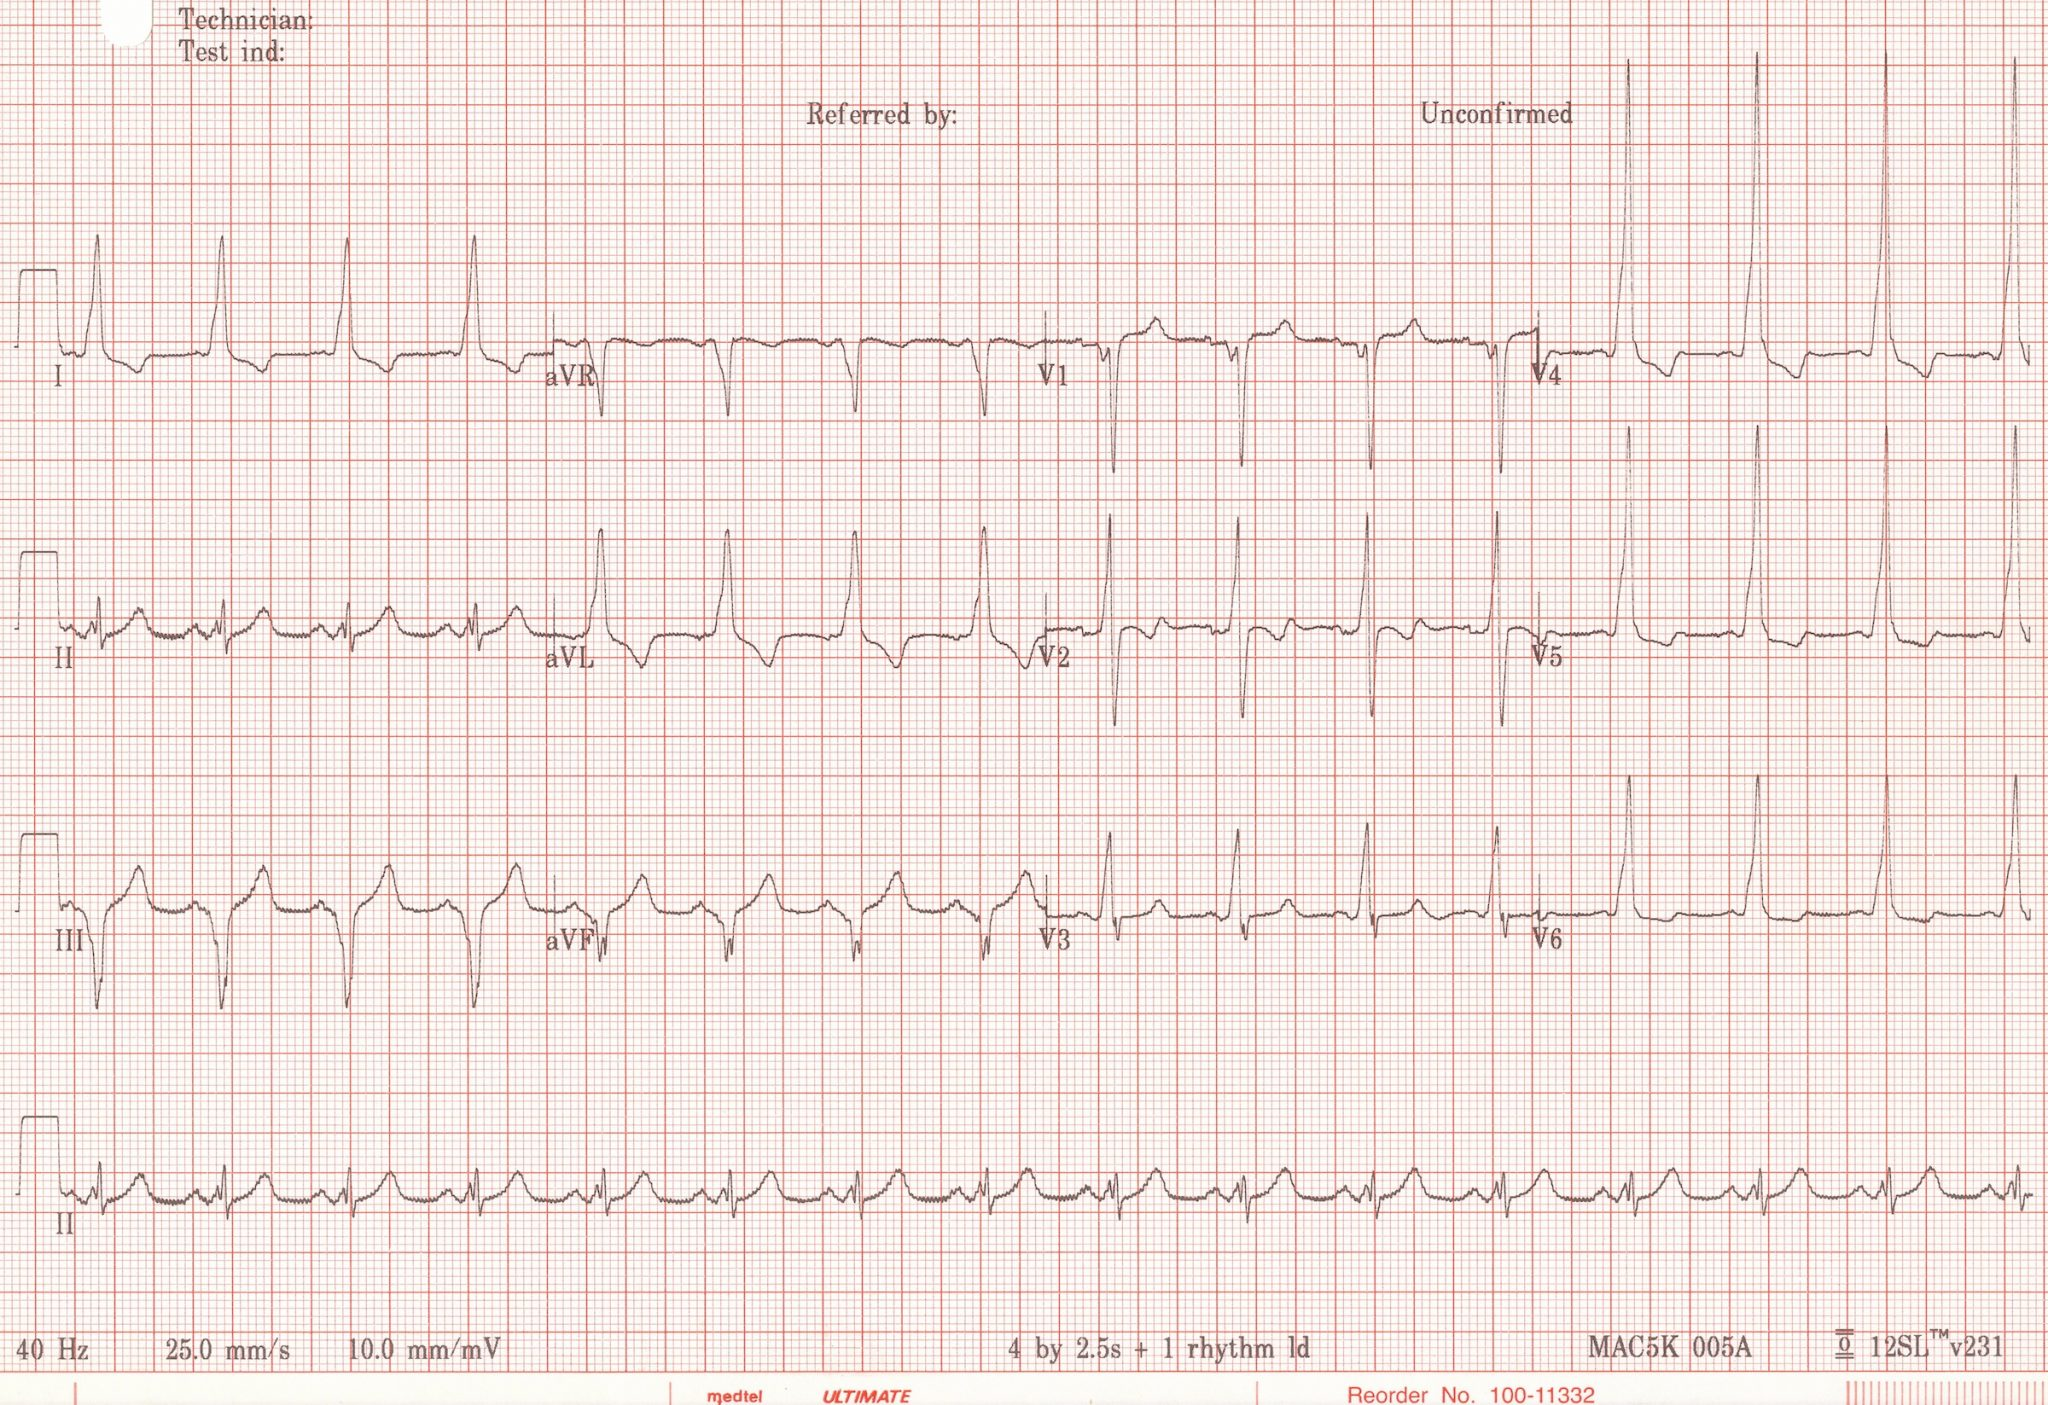 Type B Wolff-Parkinson-White, the negative delta wave is in III and aVF